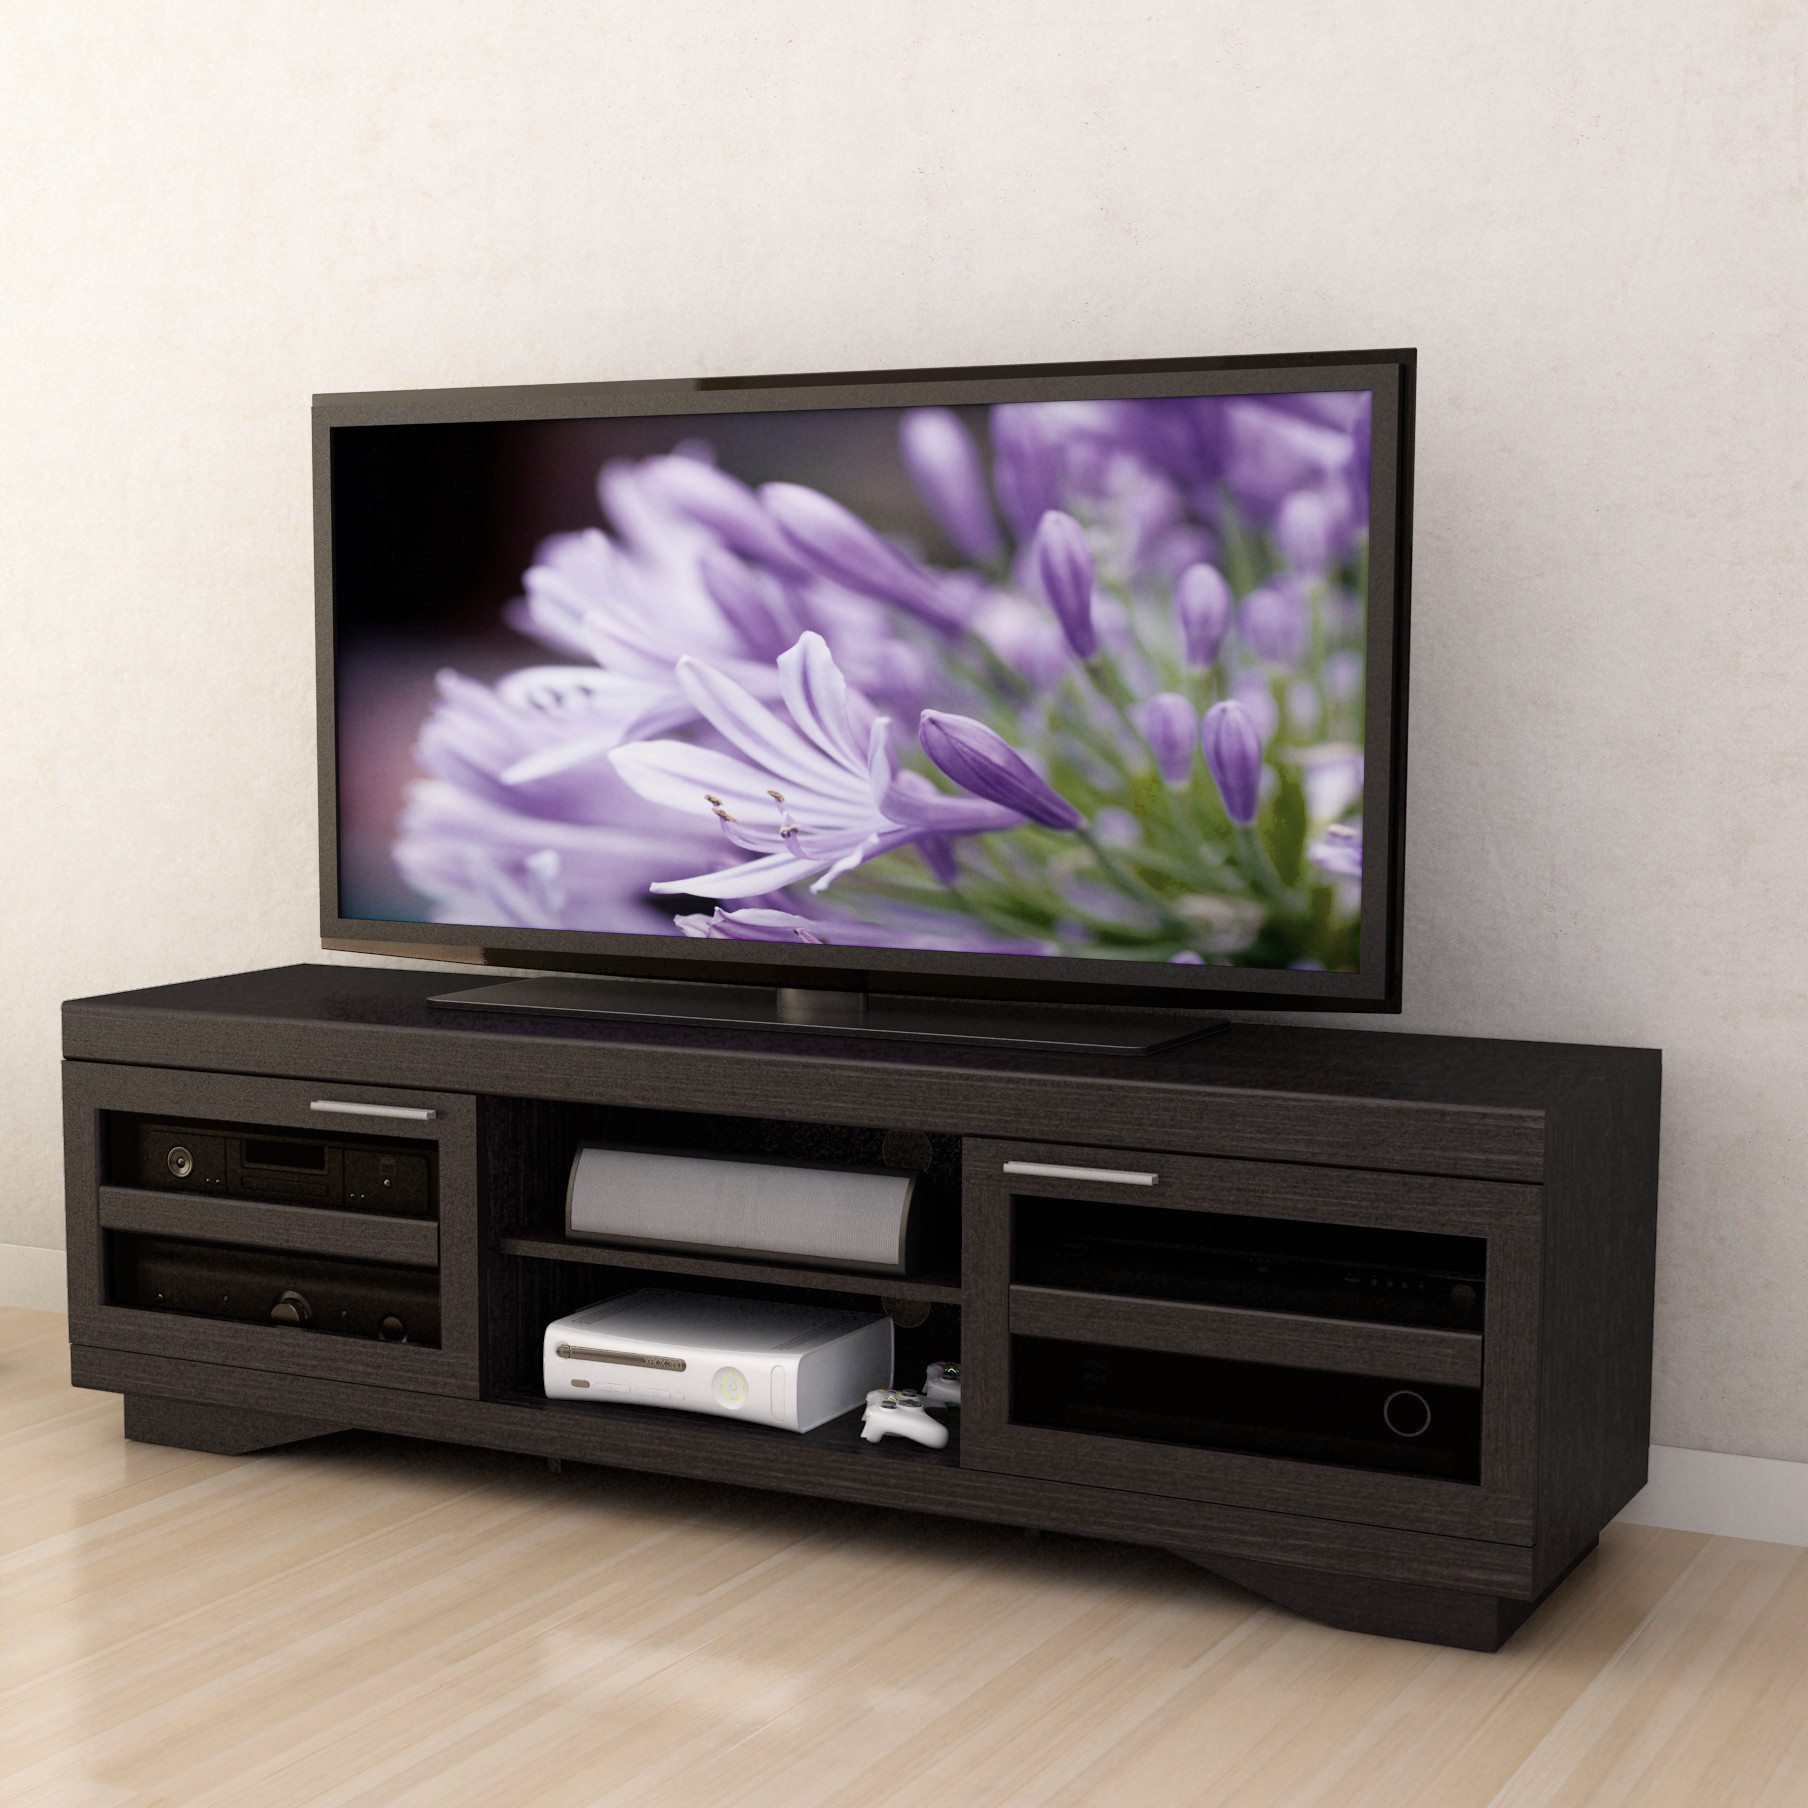 Creative Ideas for Repurposing Entertainment Centers